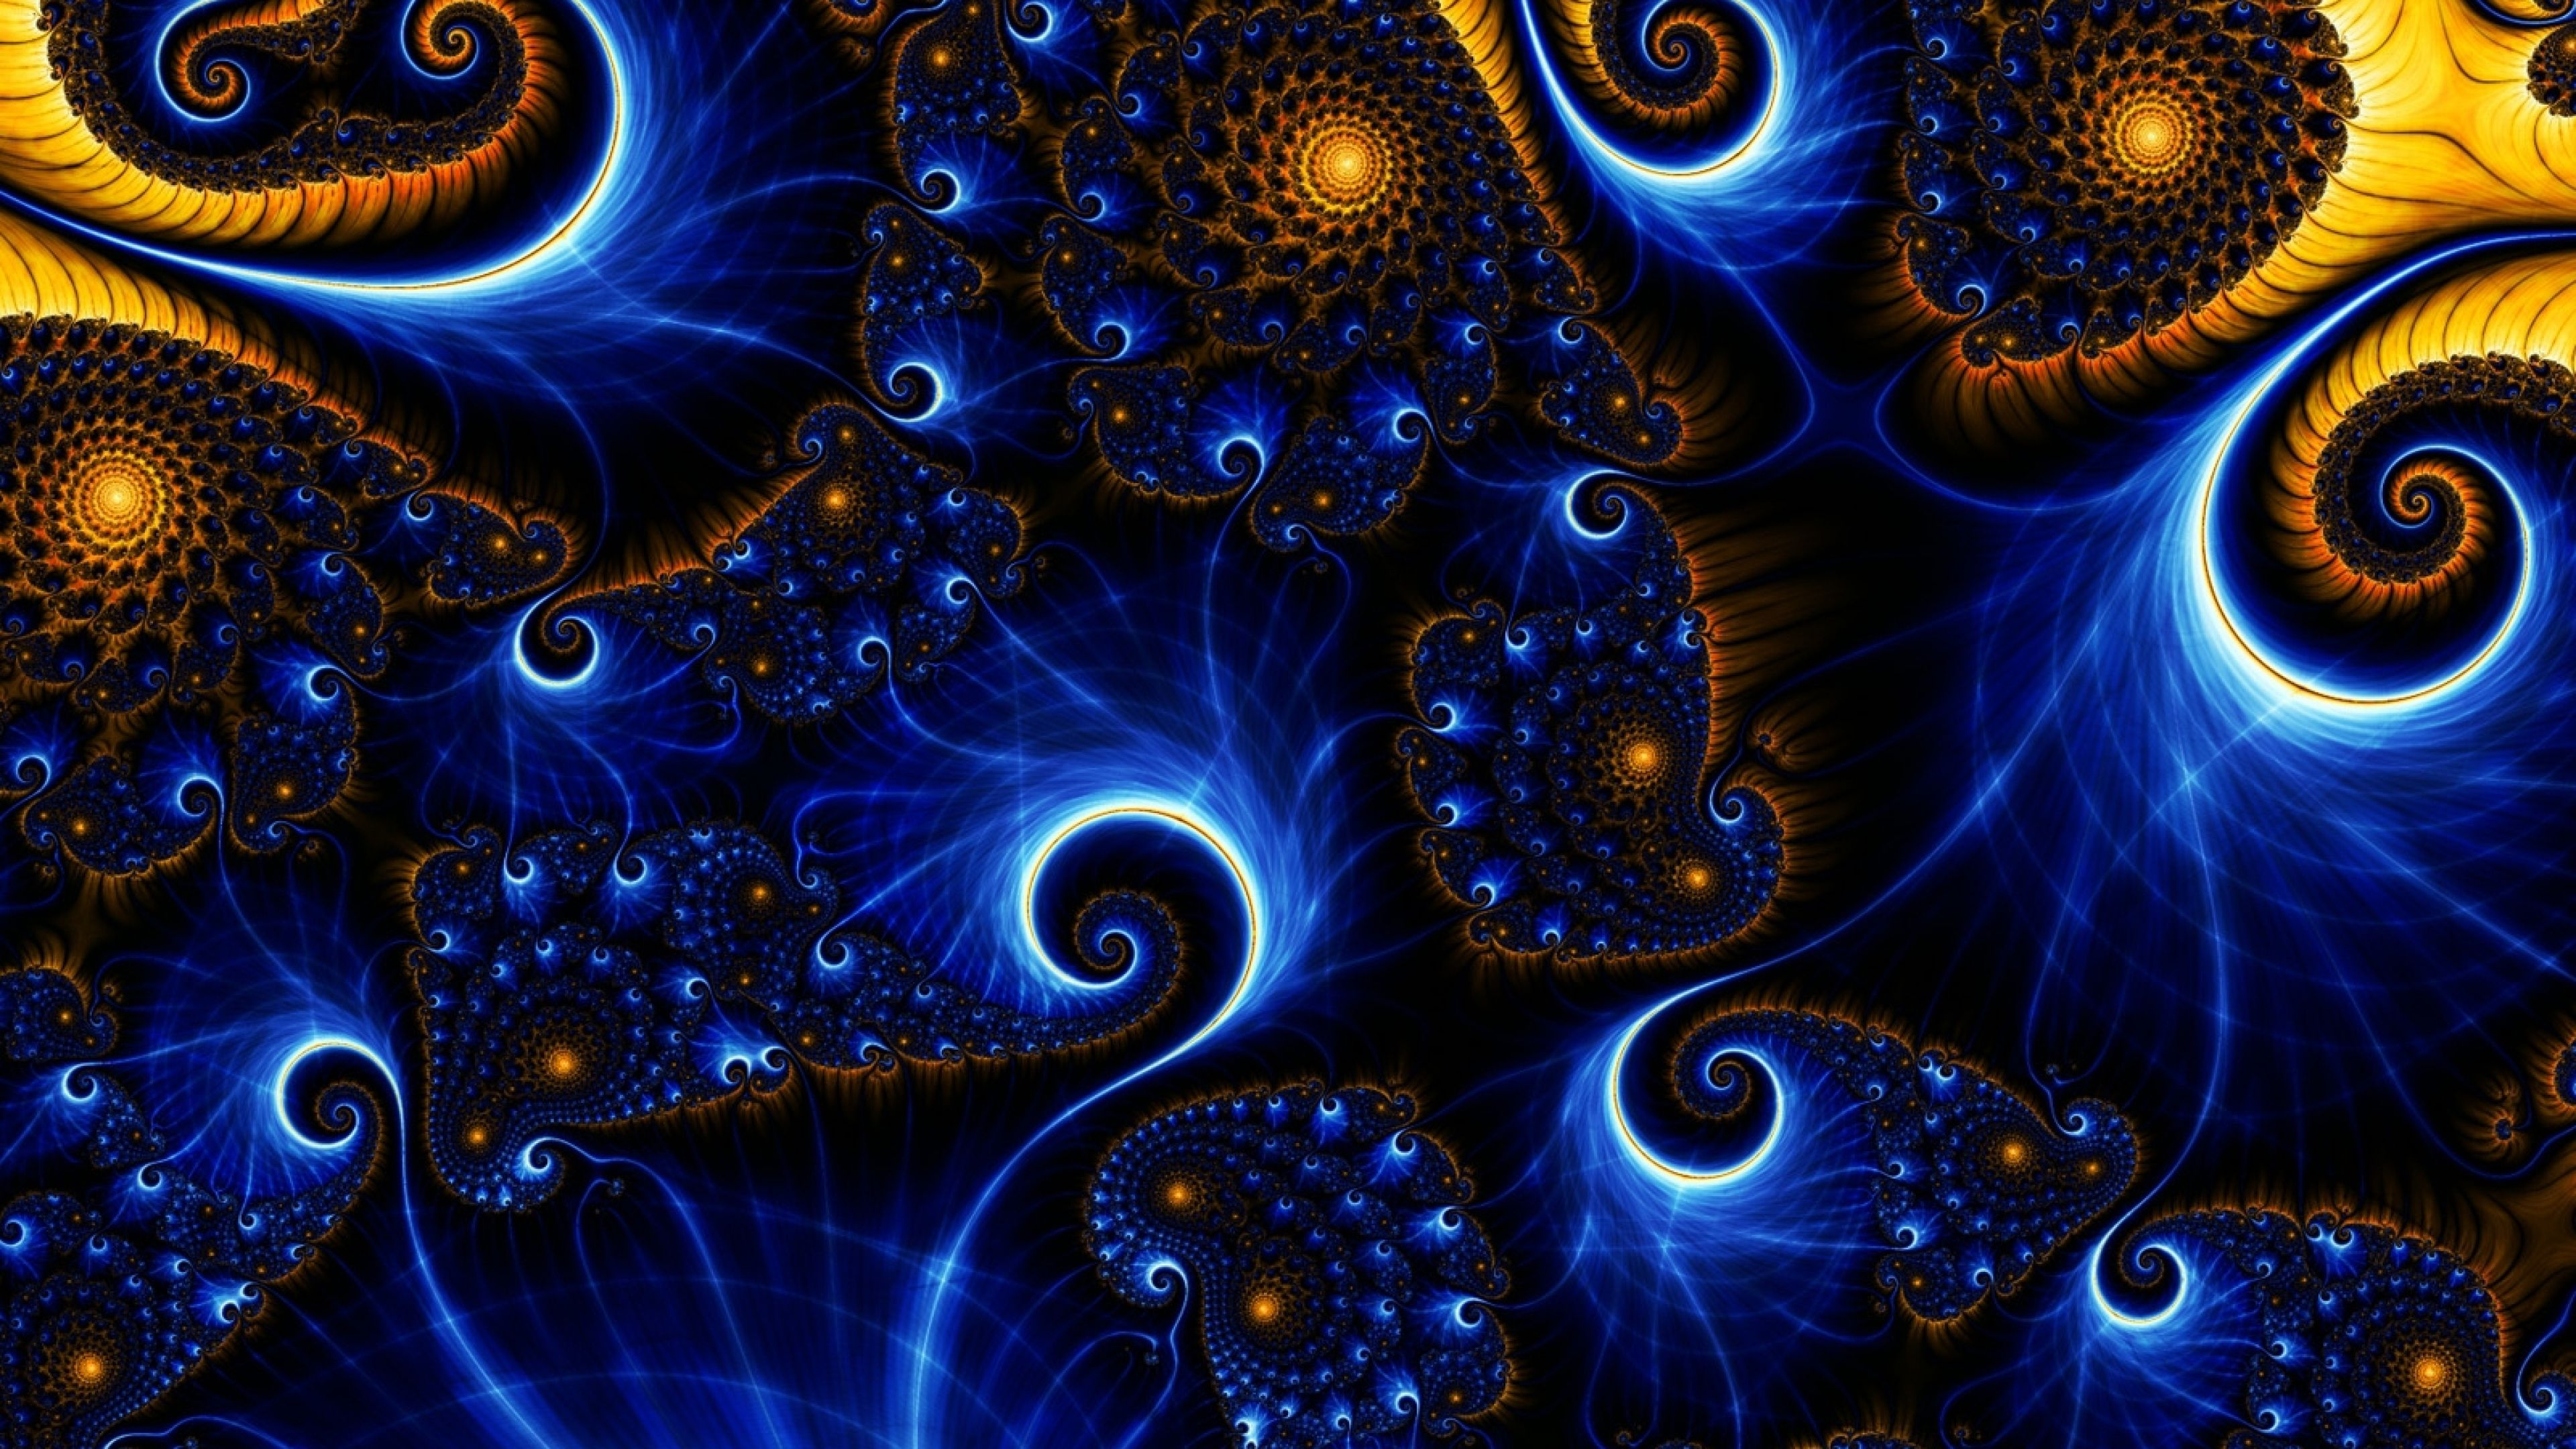 4k Ultra Hd Fractal Wallpapers Hd Desktop Backgrounds 3840x2160 Downloads All Time Fractal Art Abstract Digital Art Trippy Wallpaper